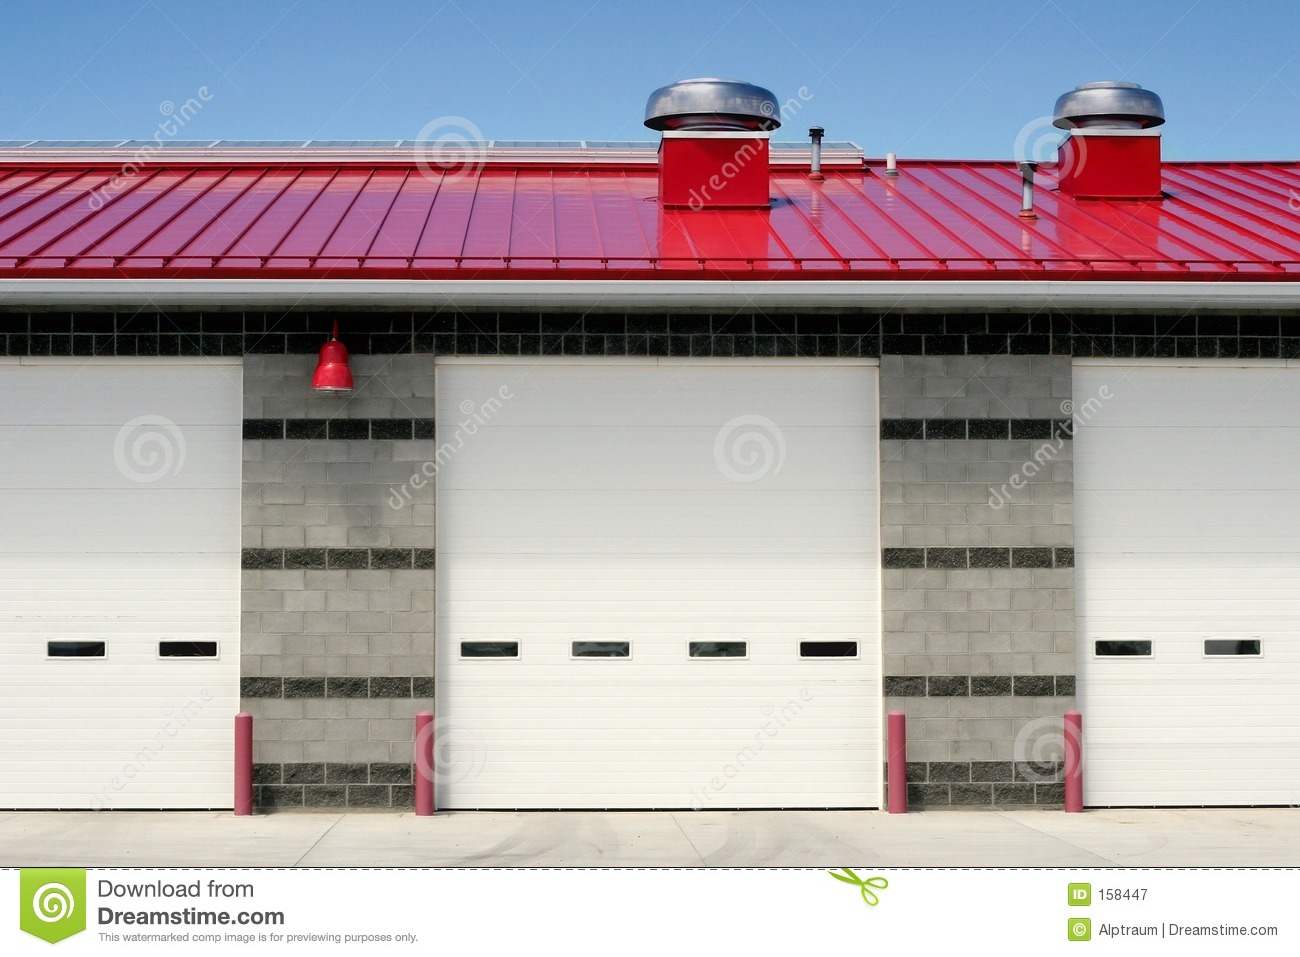 Fire station frontal